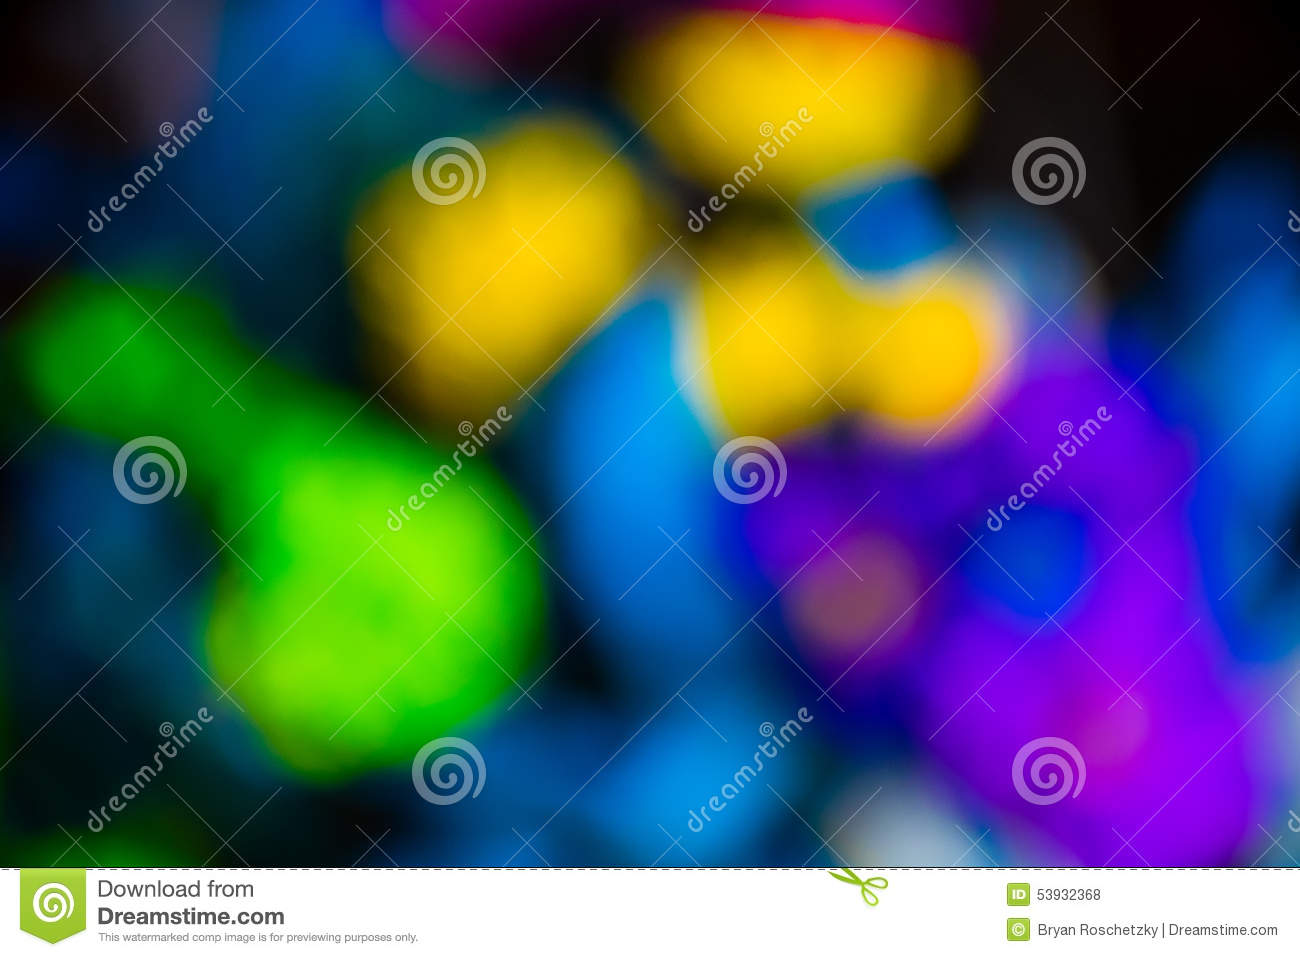 Colores brillantes fluorescentes abstractos de las flores Blurred